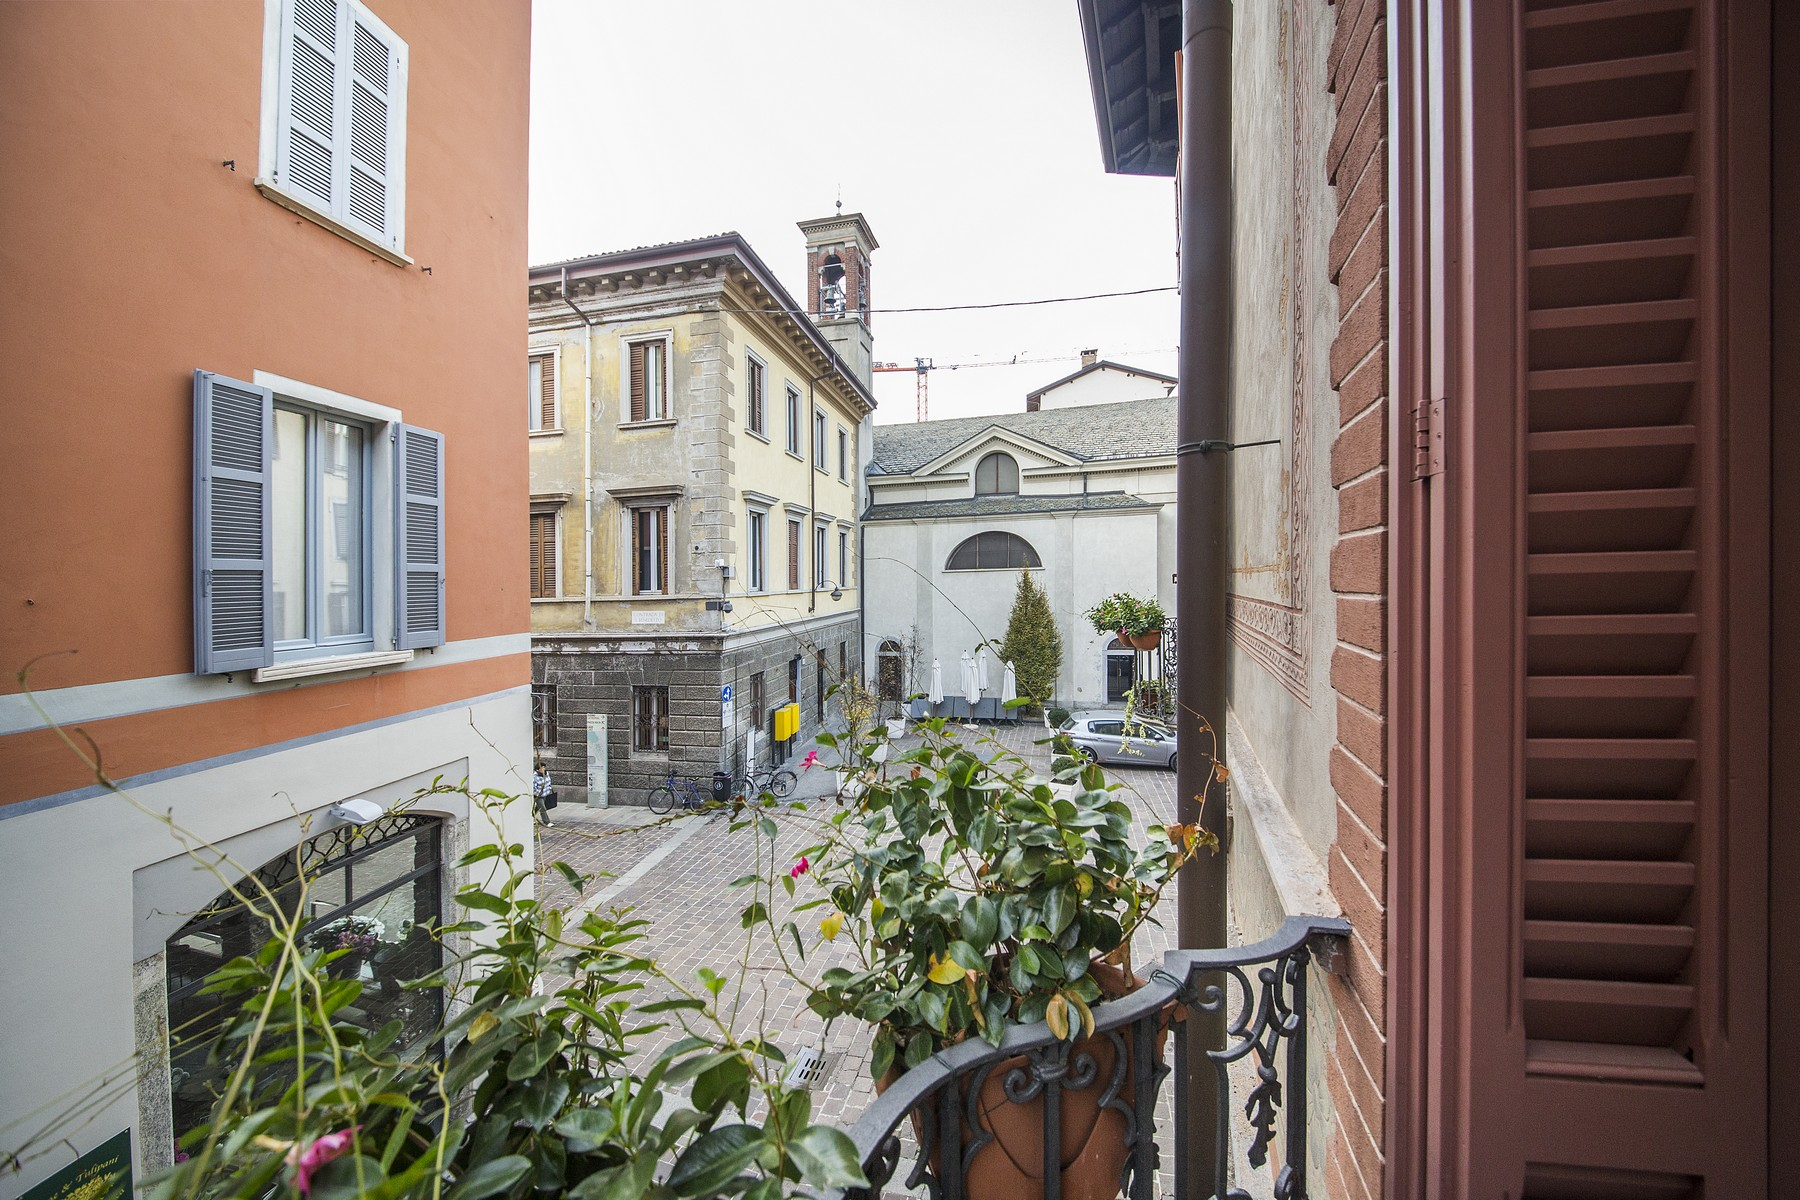 Additional photo for property listing at Wonderful apartment in prestigious building in the center of Como Via Bonanomi Como, Como 22100 Italie